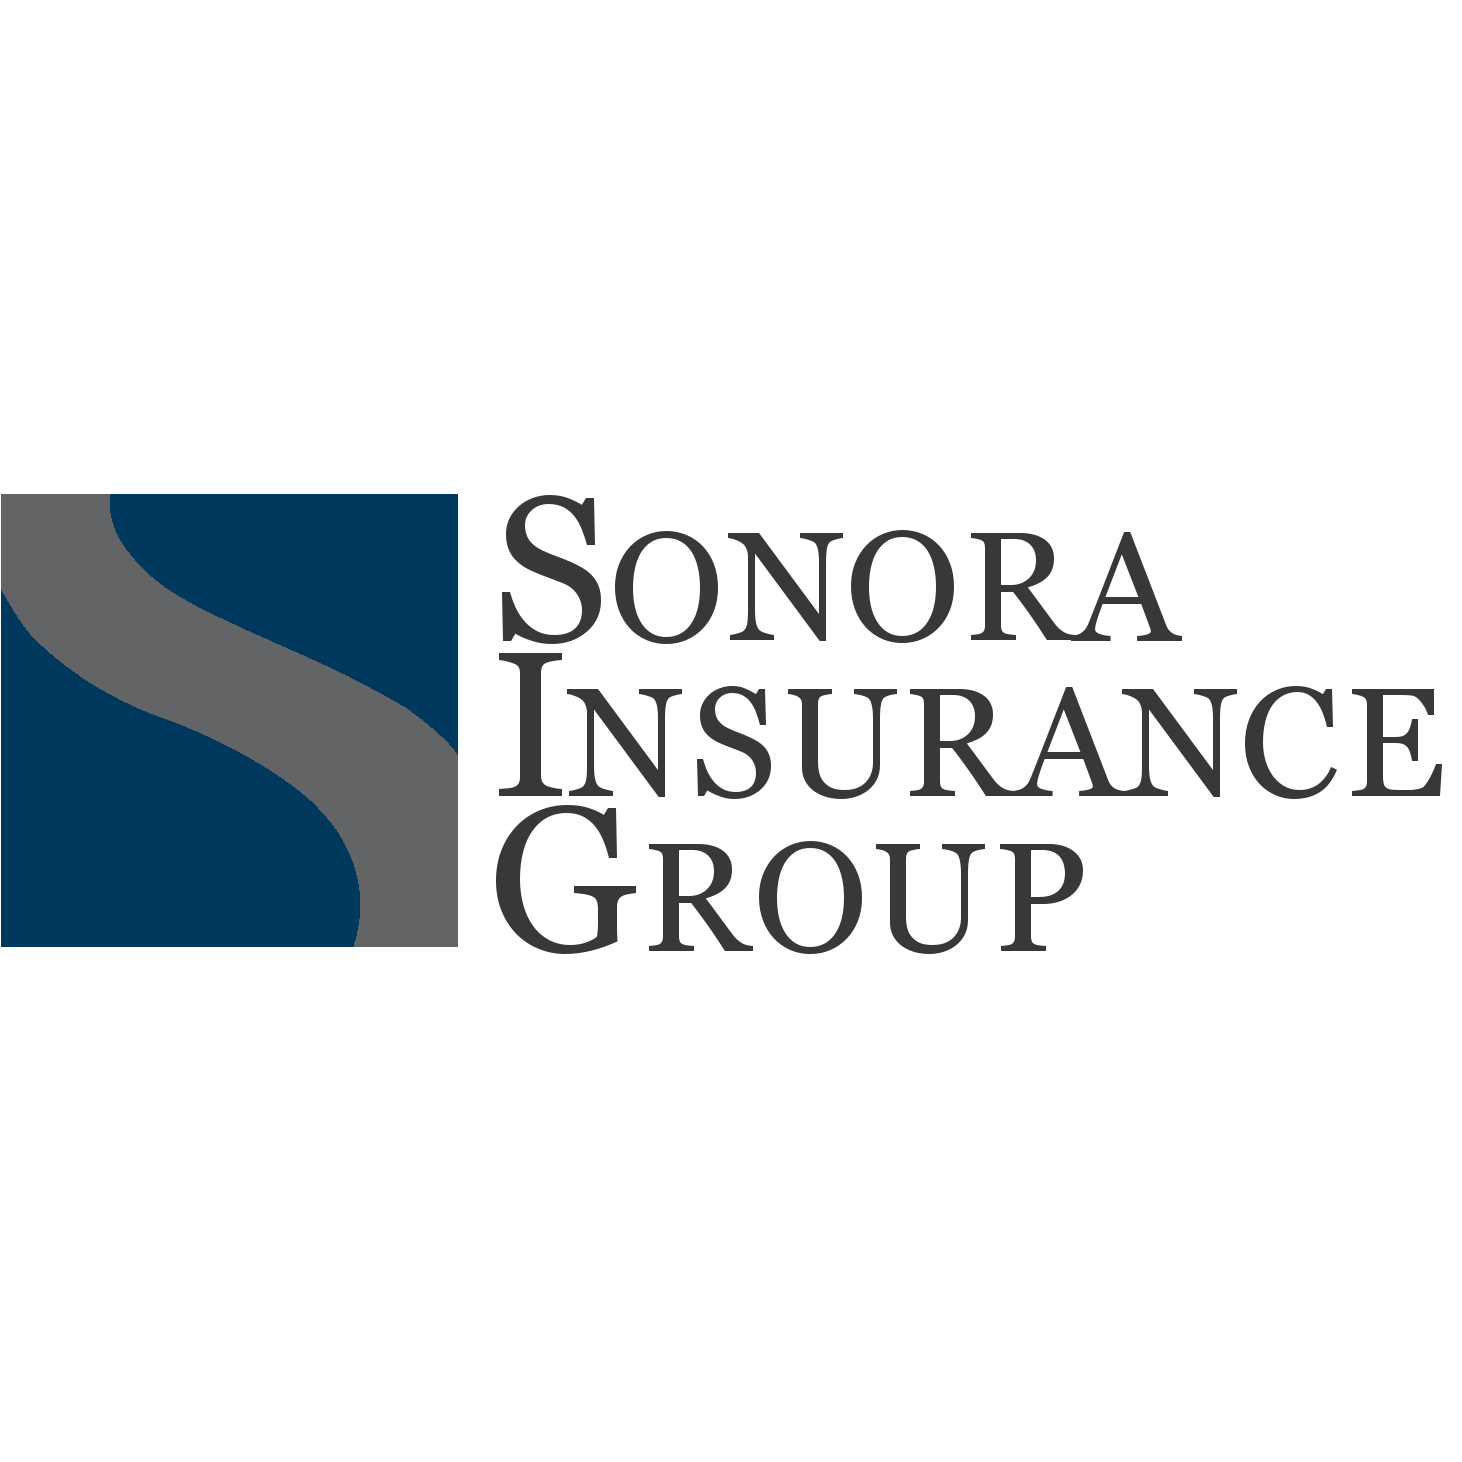 Sonora Insurance Group LLC